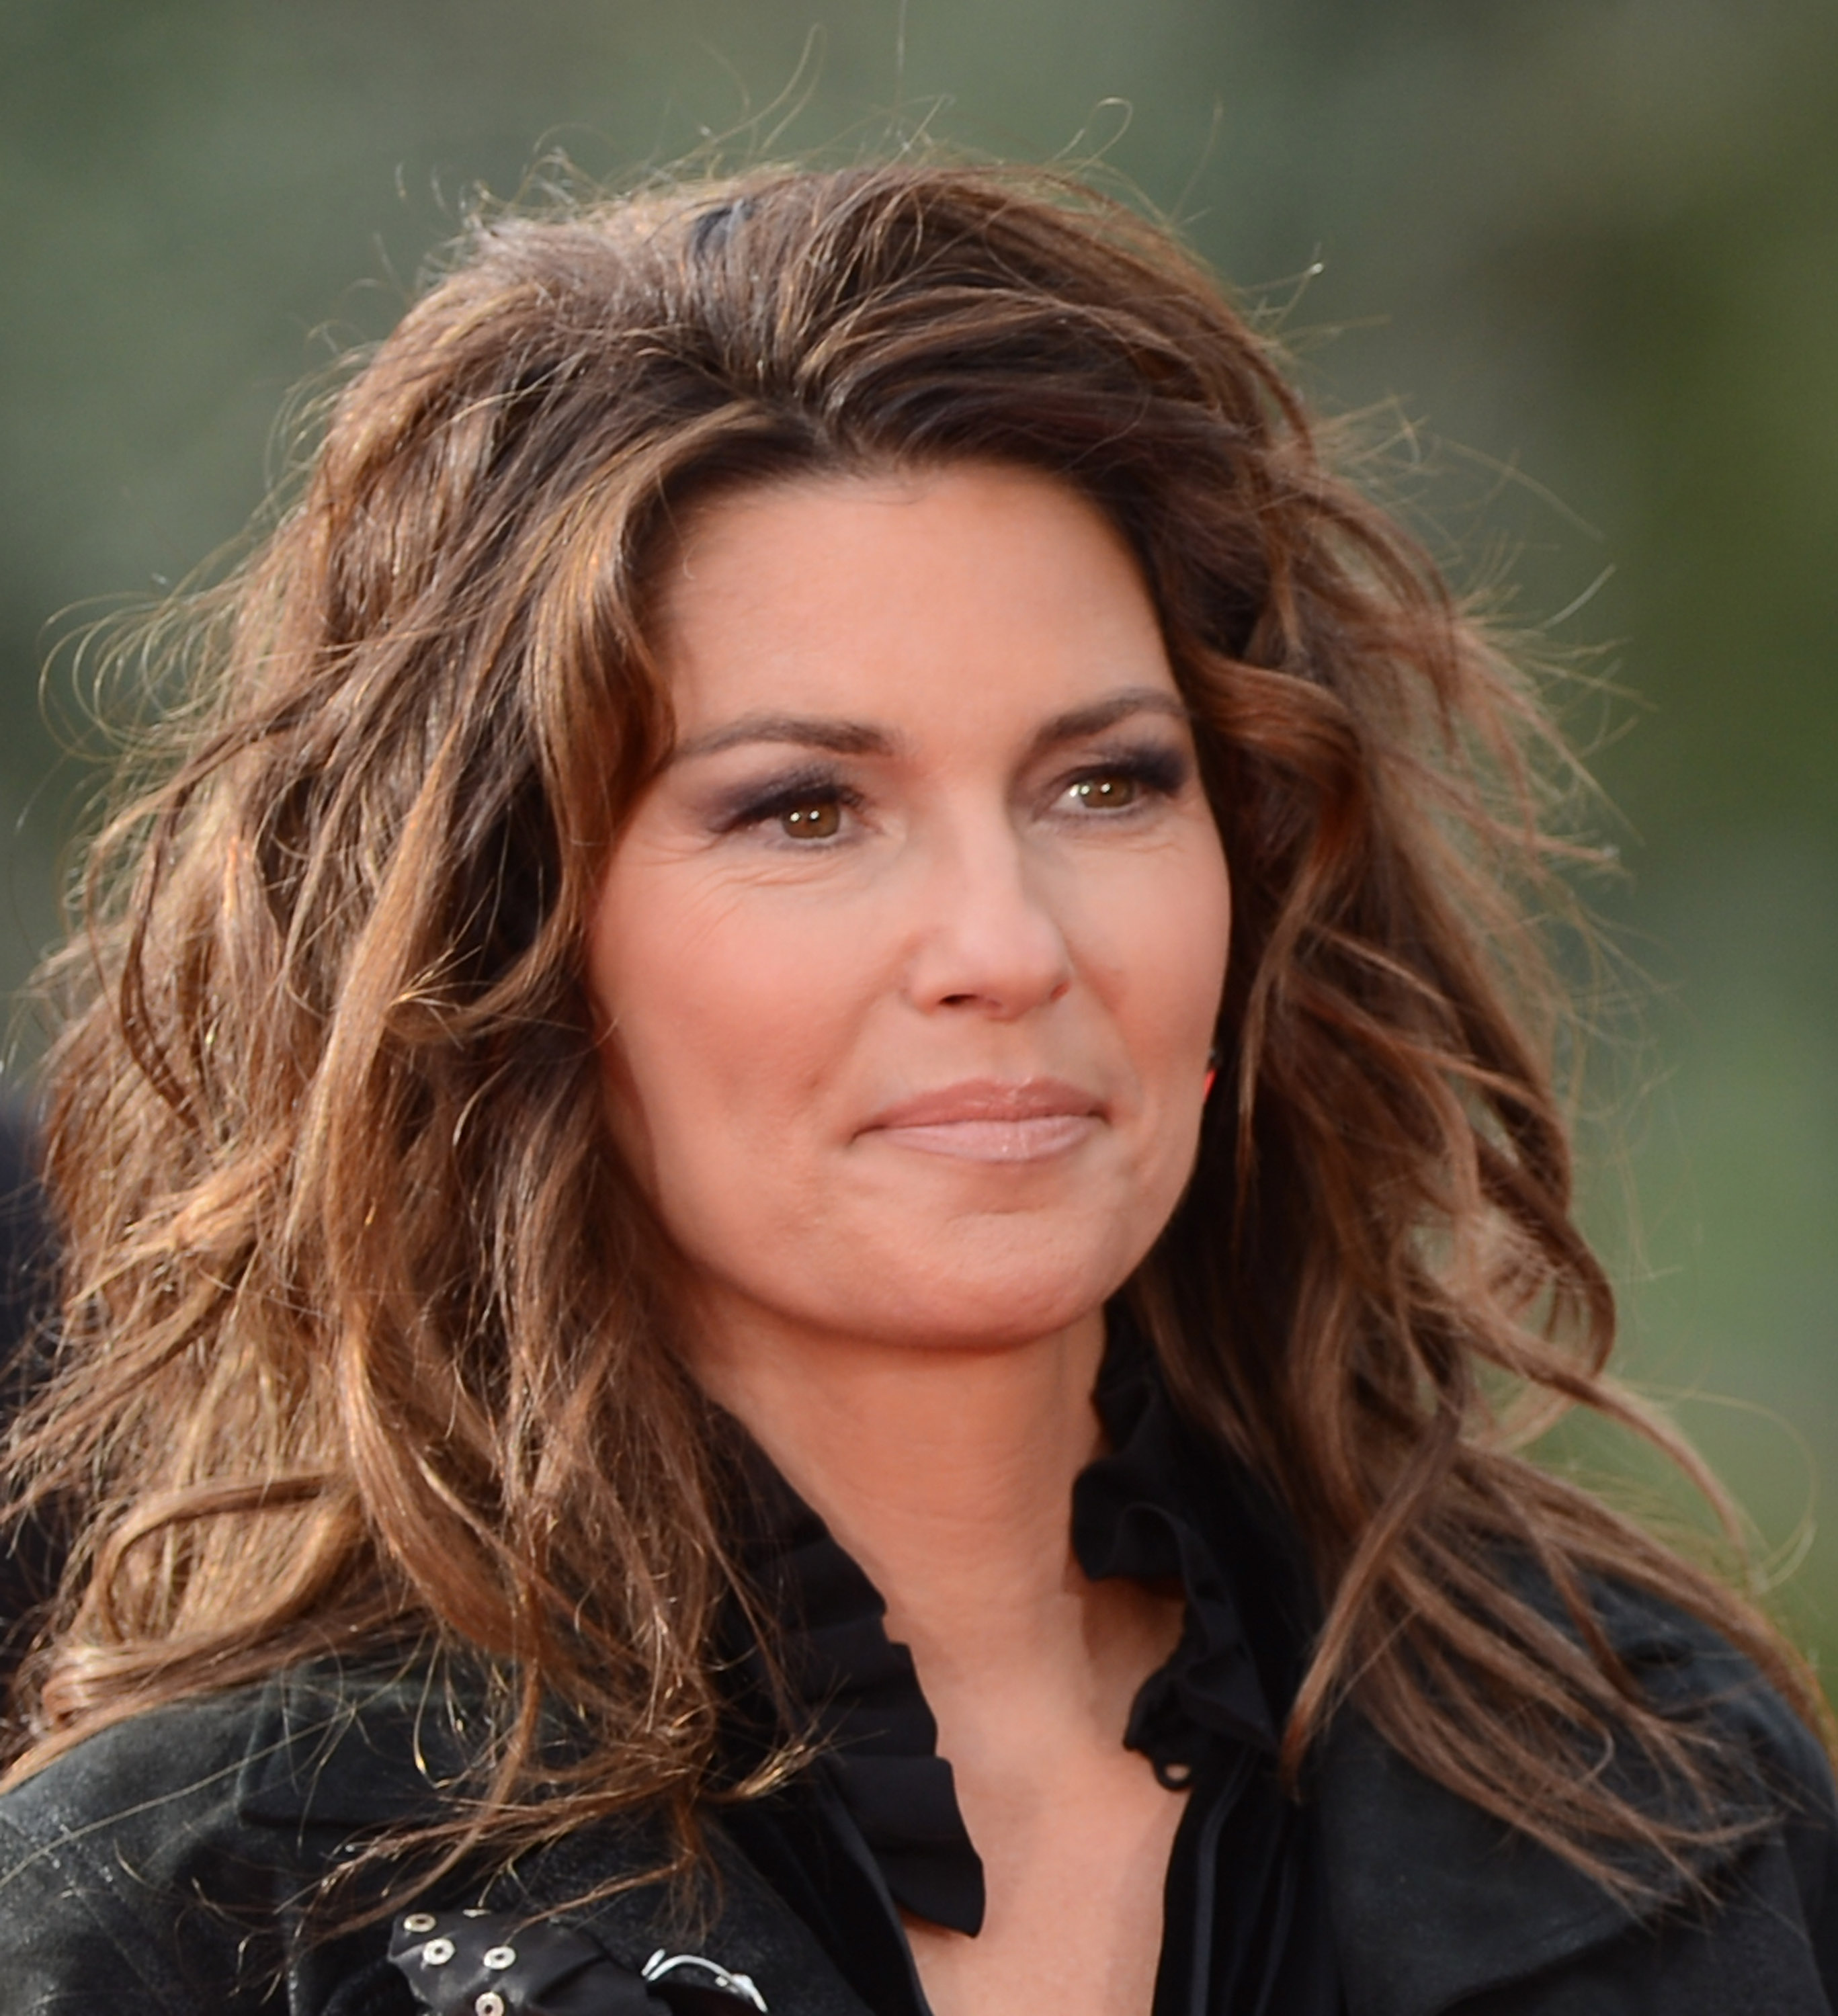 shania twain 2012   shania twain photo 32930427   fanpop